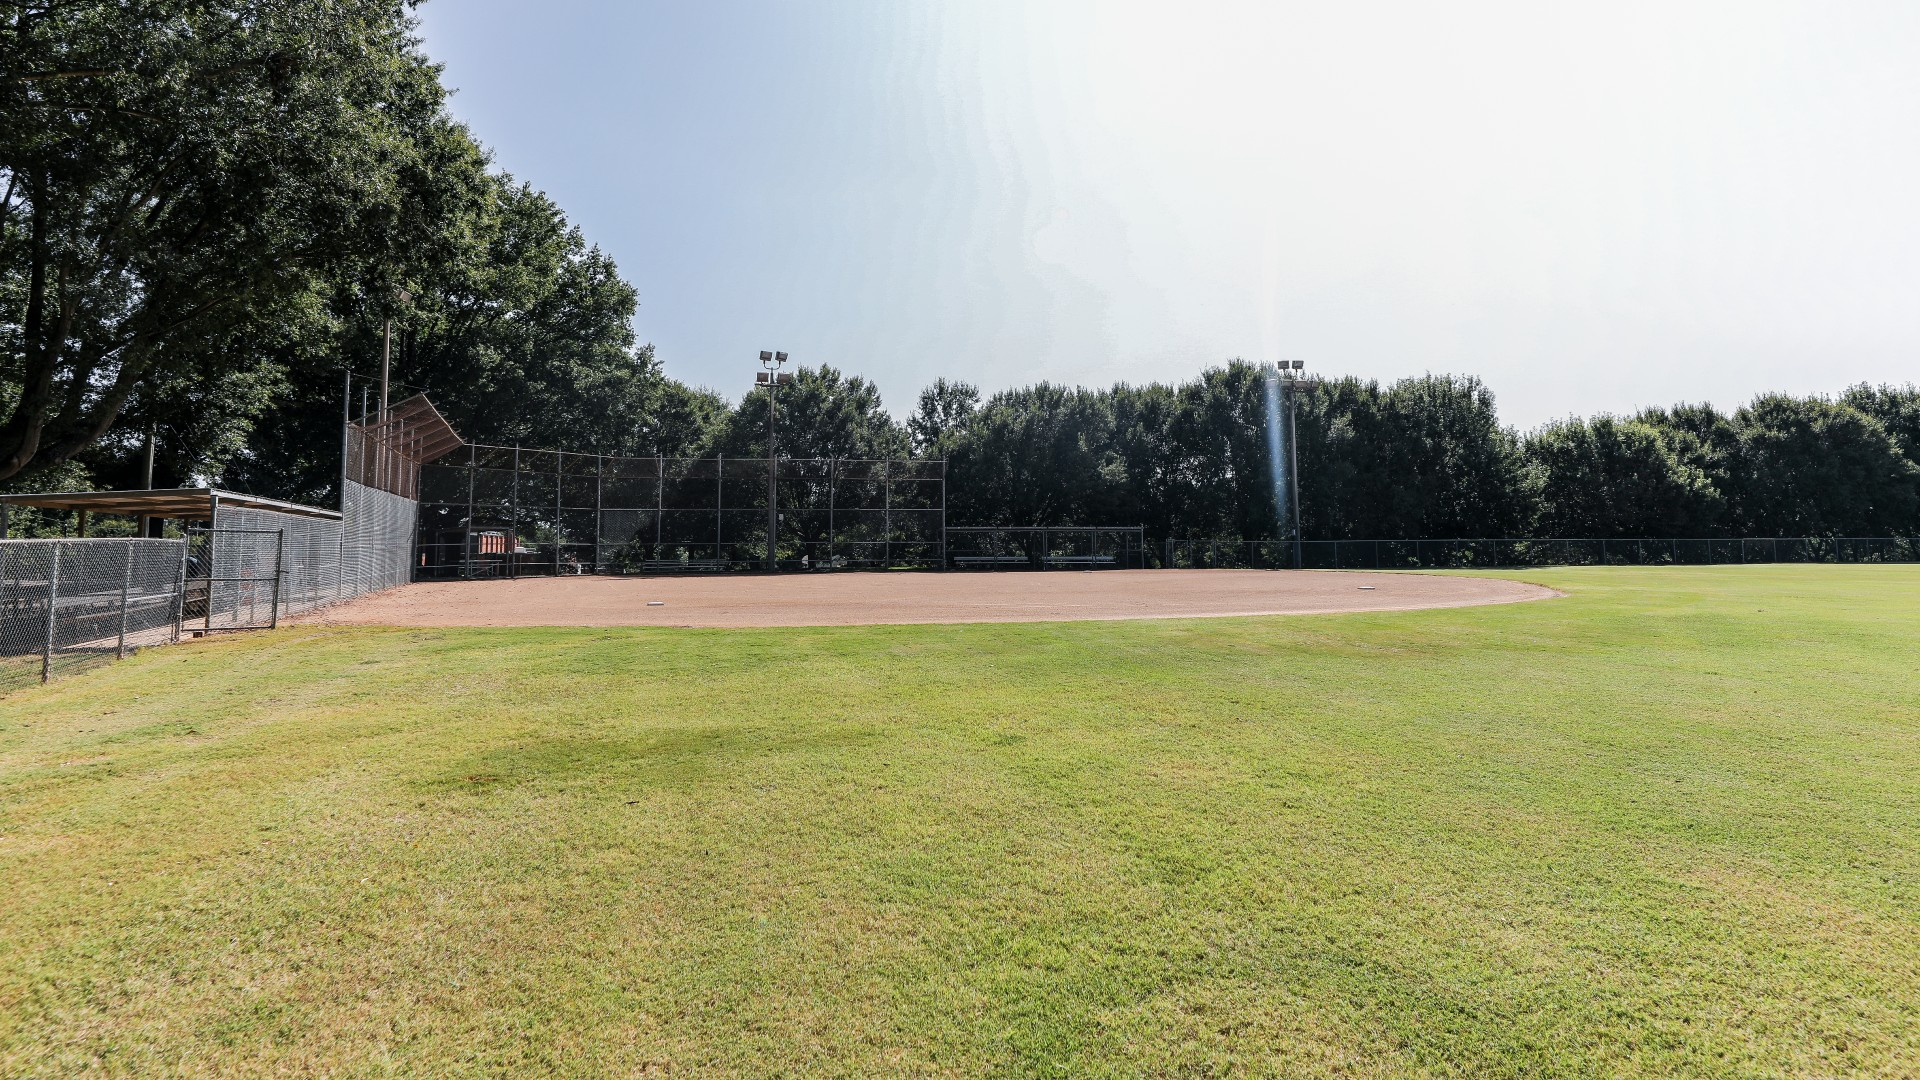 A open softball field with backstop